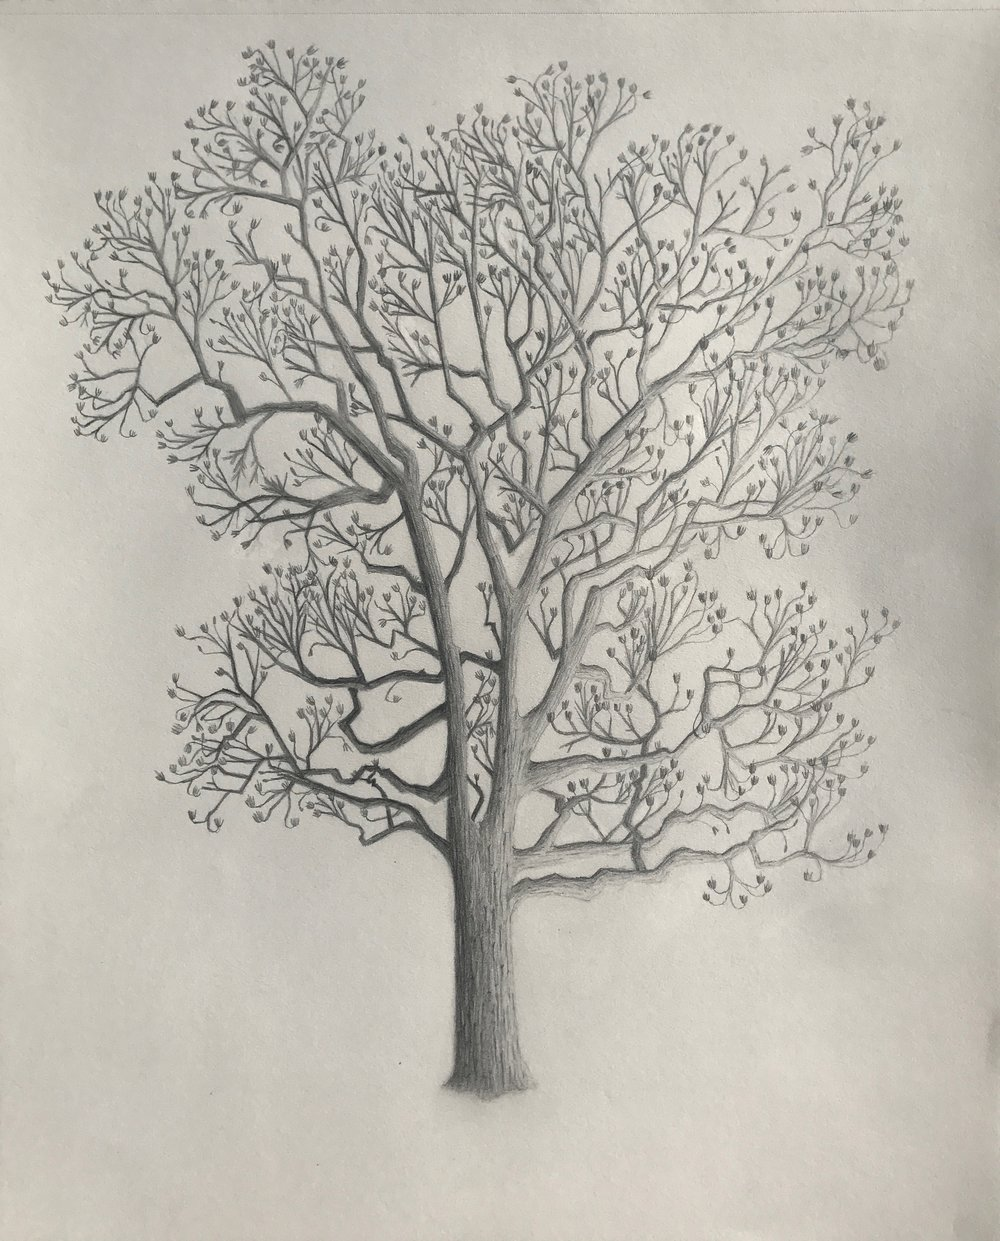 Winter Tulip Tree illustration by  Jessica Maffia